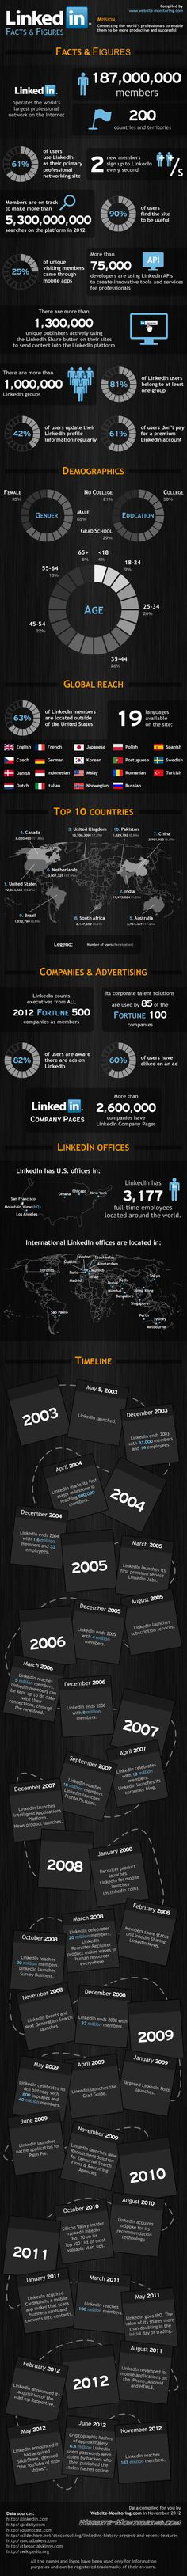 linkedin facts and figures via @BlogModerateur